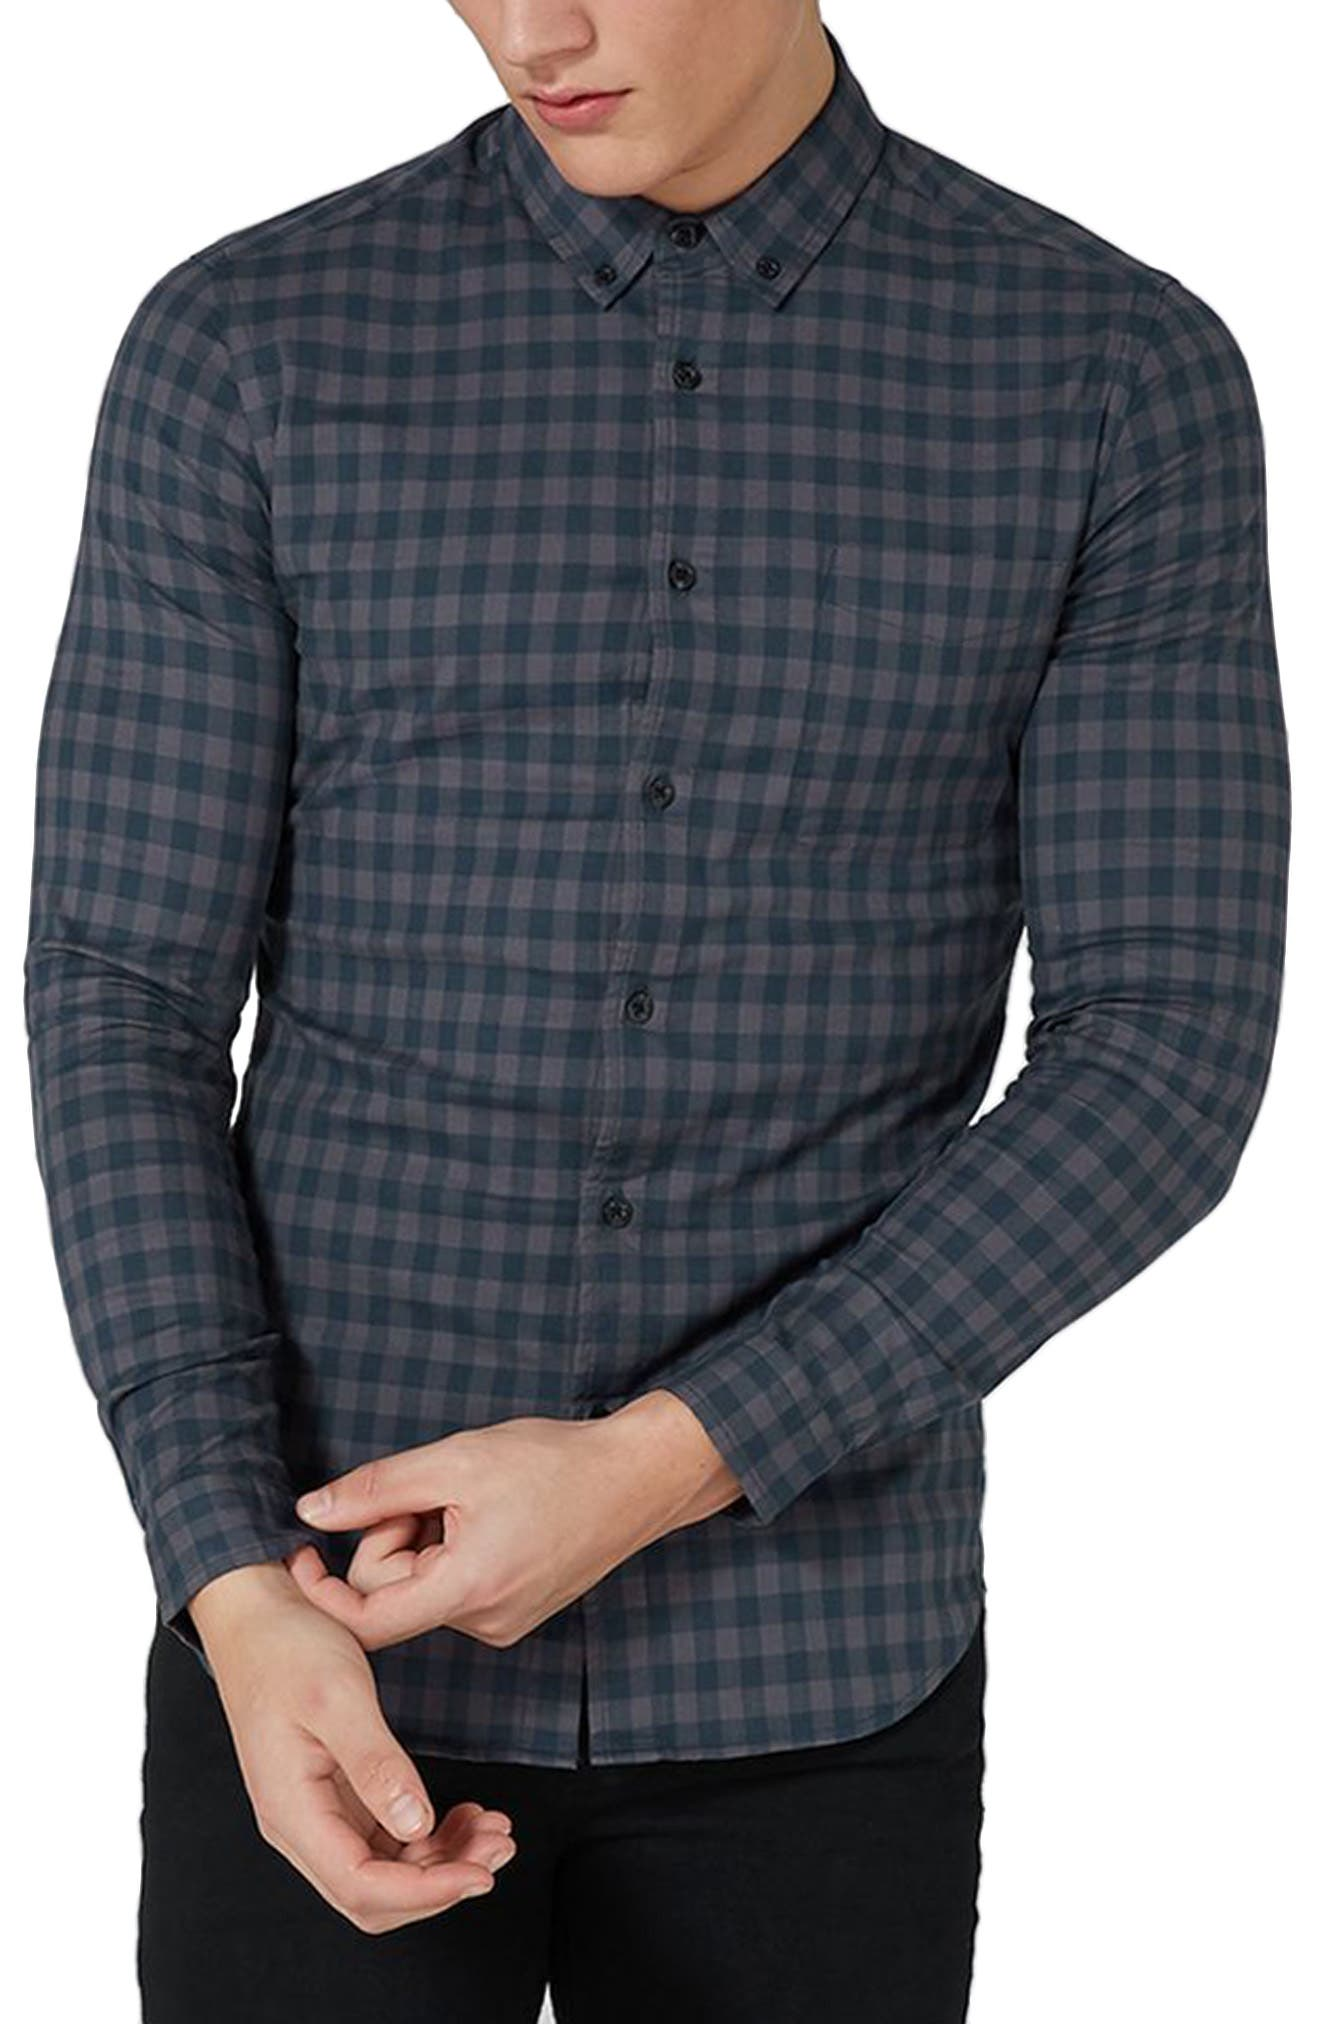 Muscle Fit Gingham Shirt,                         Main,                         color, Navy Blue Multi